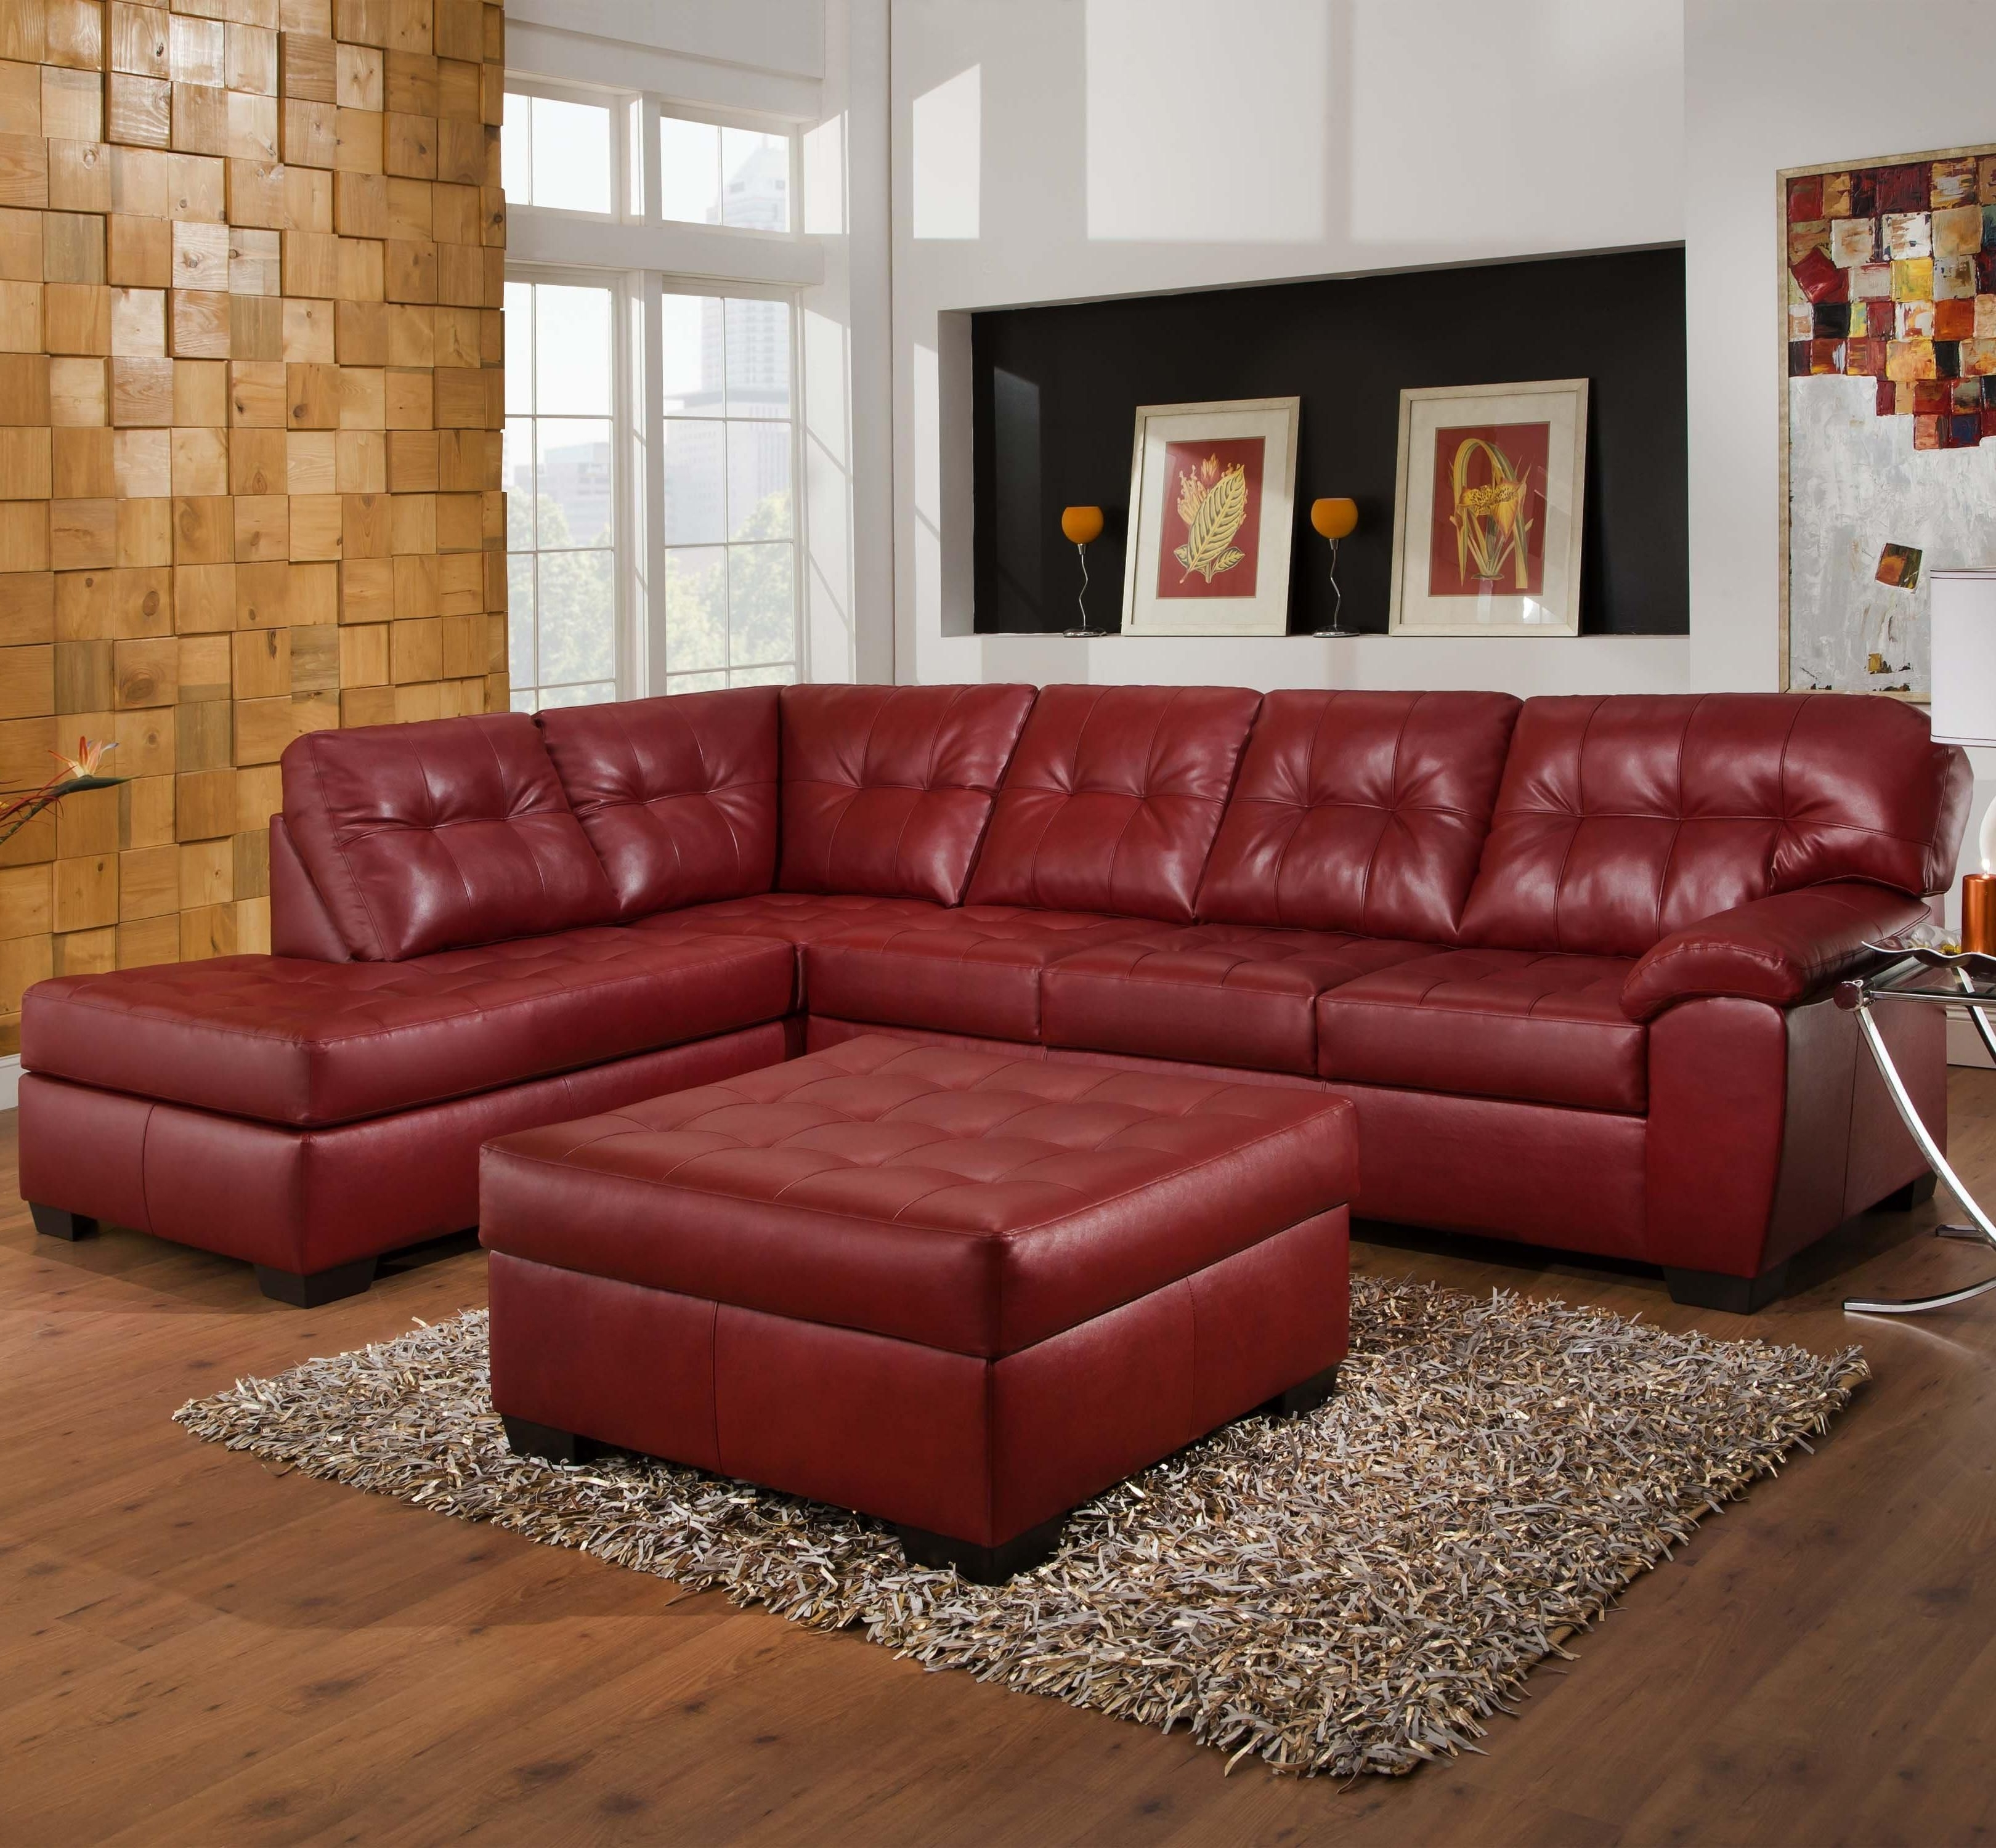 Latest Sectional Sofas At Bad Boy Intended For 9569 2 Piece Sectional With Tufted Seats & Backsimmons (View 5 of 20)